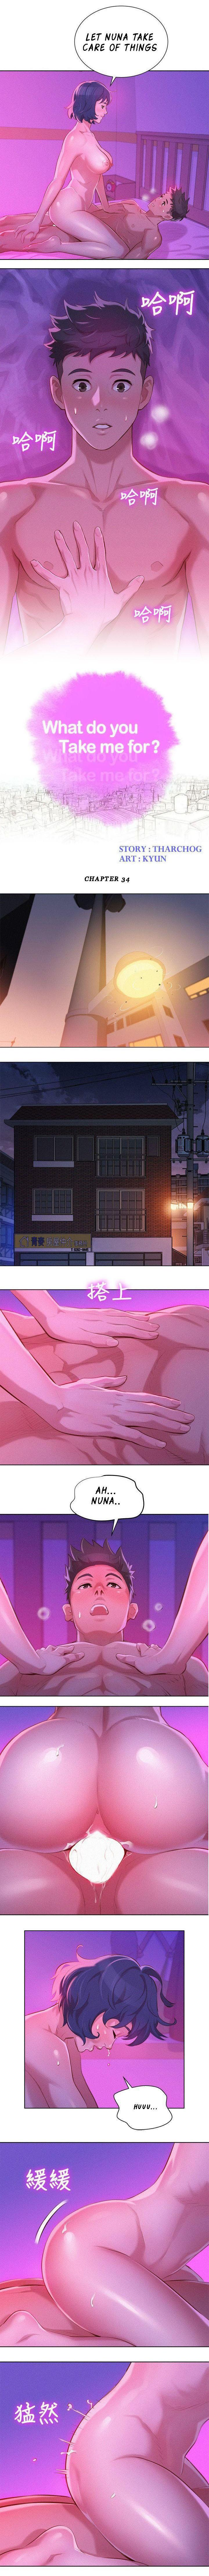 What do you Take me For? Ch.42/? 343